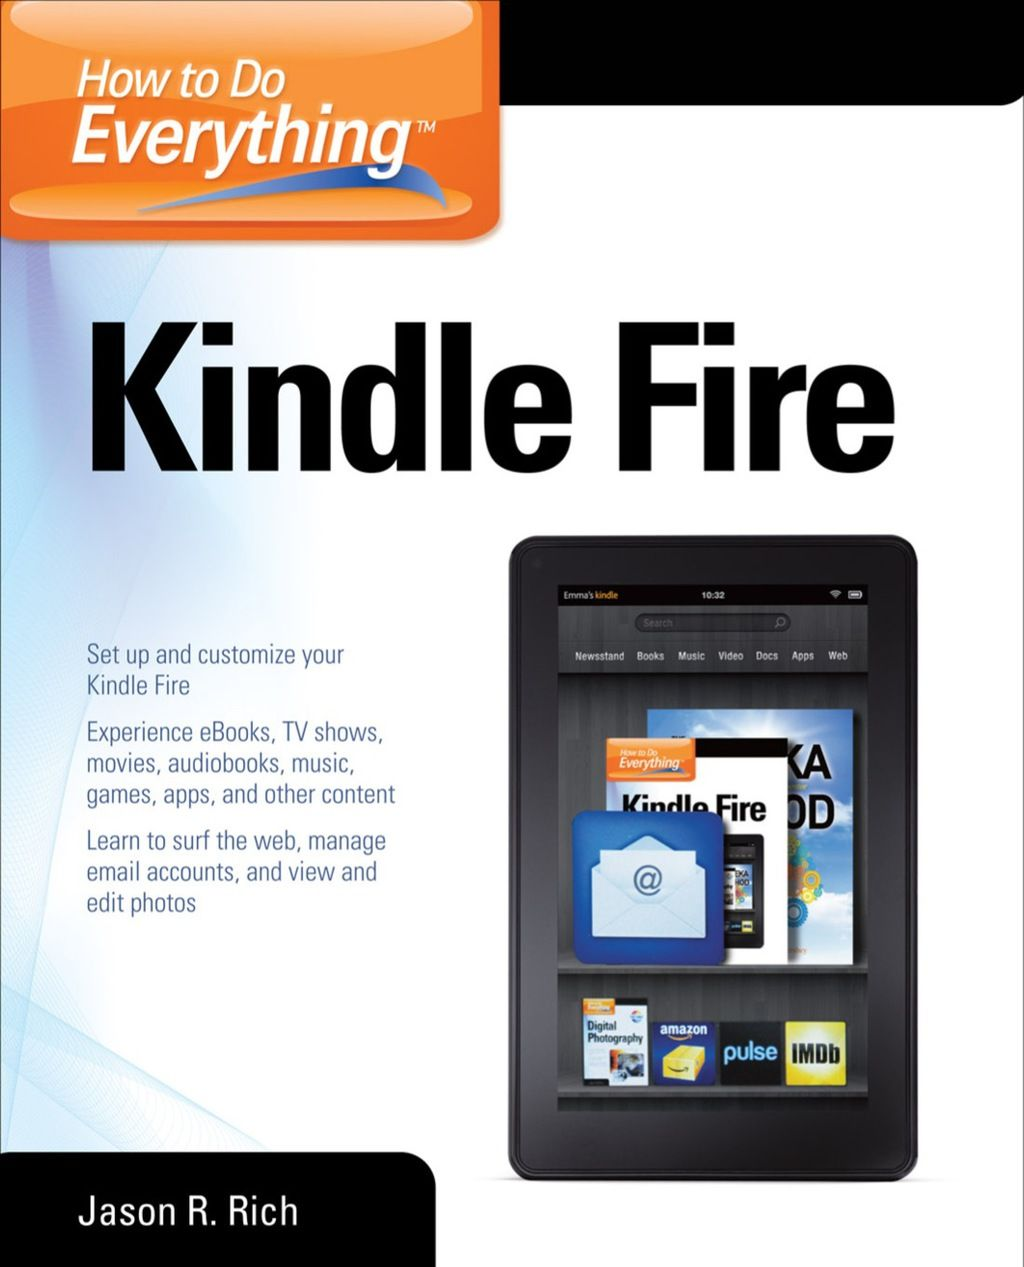 How to Do Everything Kindle Fire (eBook) in 2020 Kindle